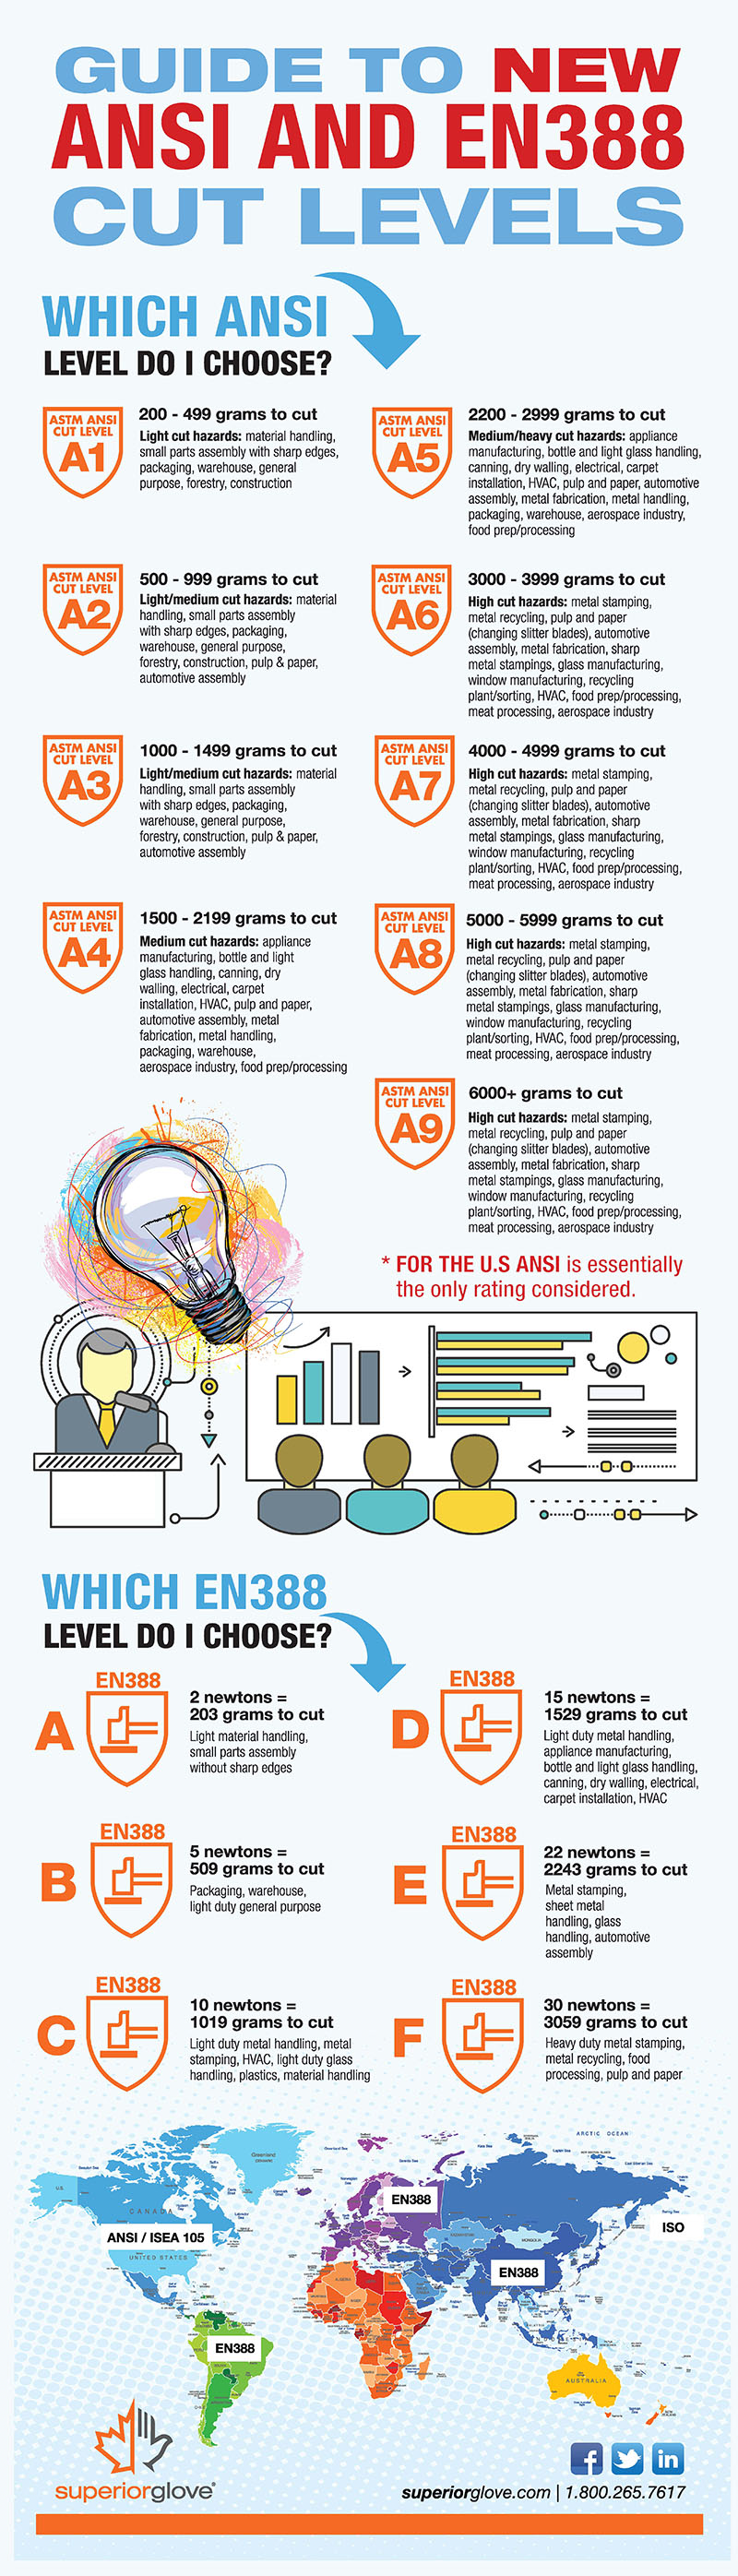 Superior-Glove-Guide-to-ANSI-EN388-Cut-Levels-Infographic